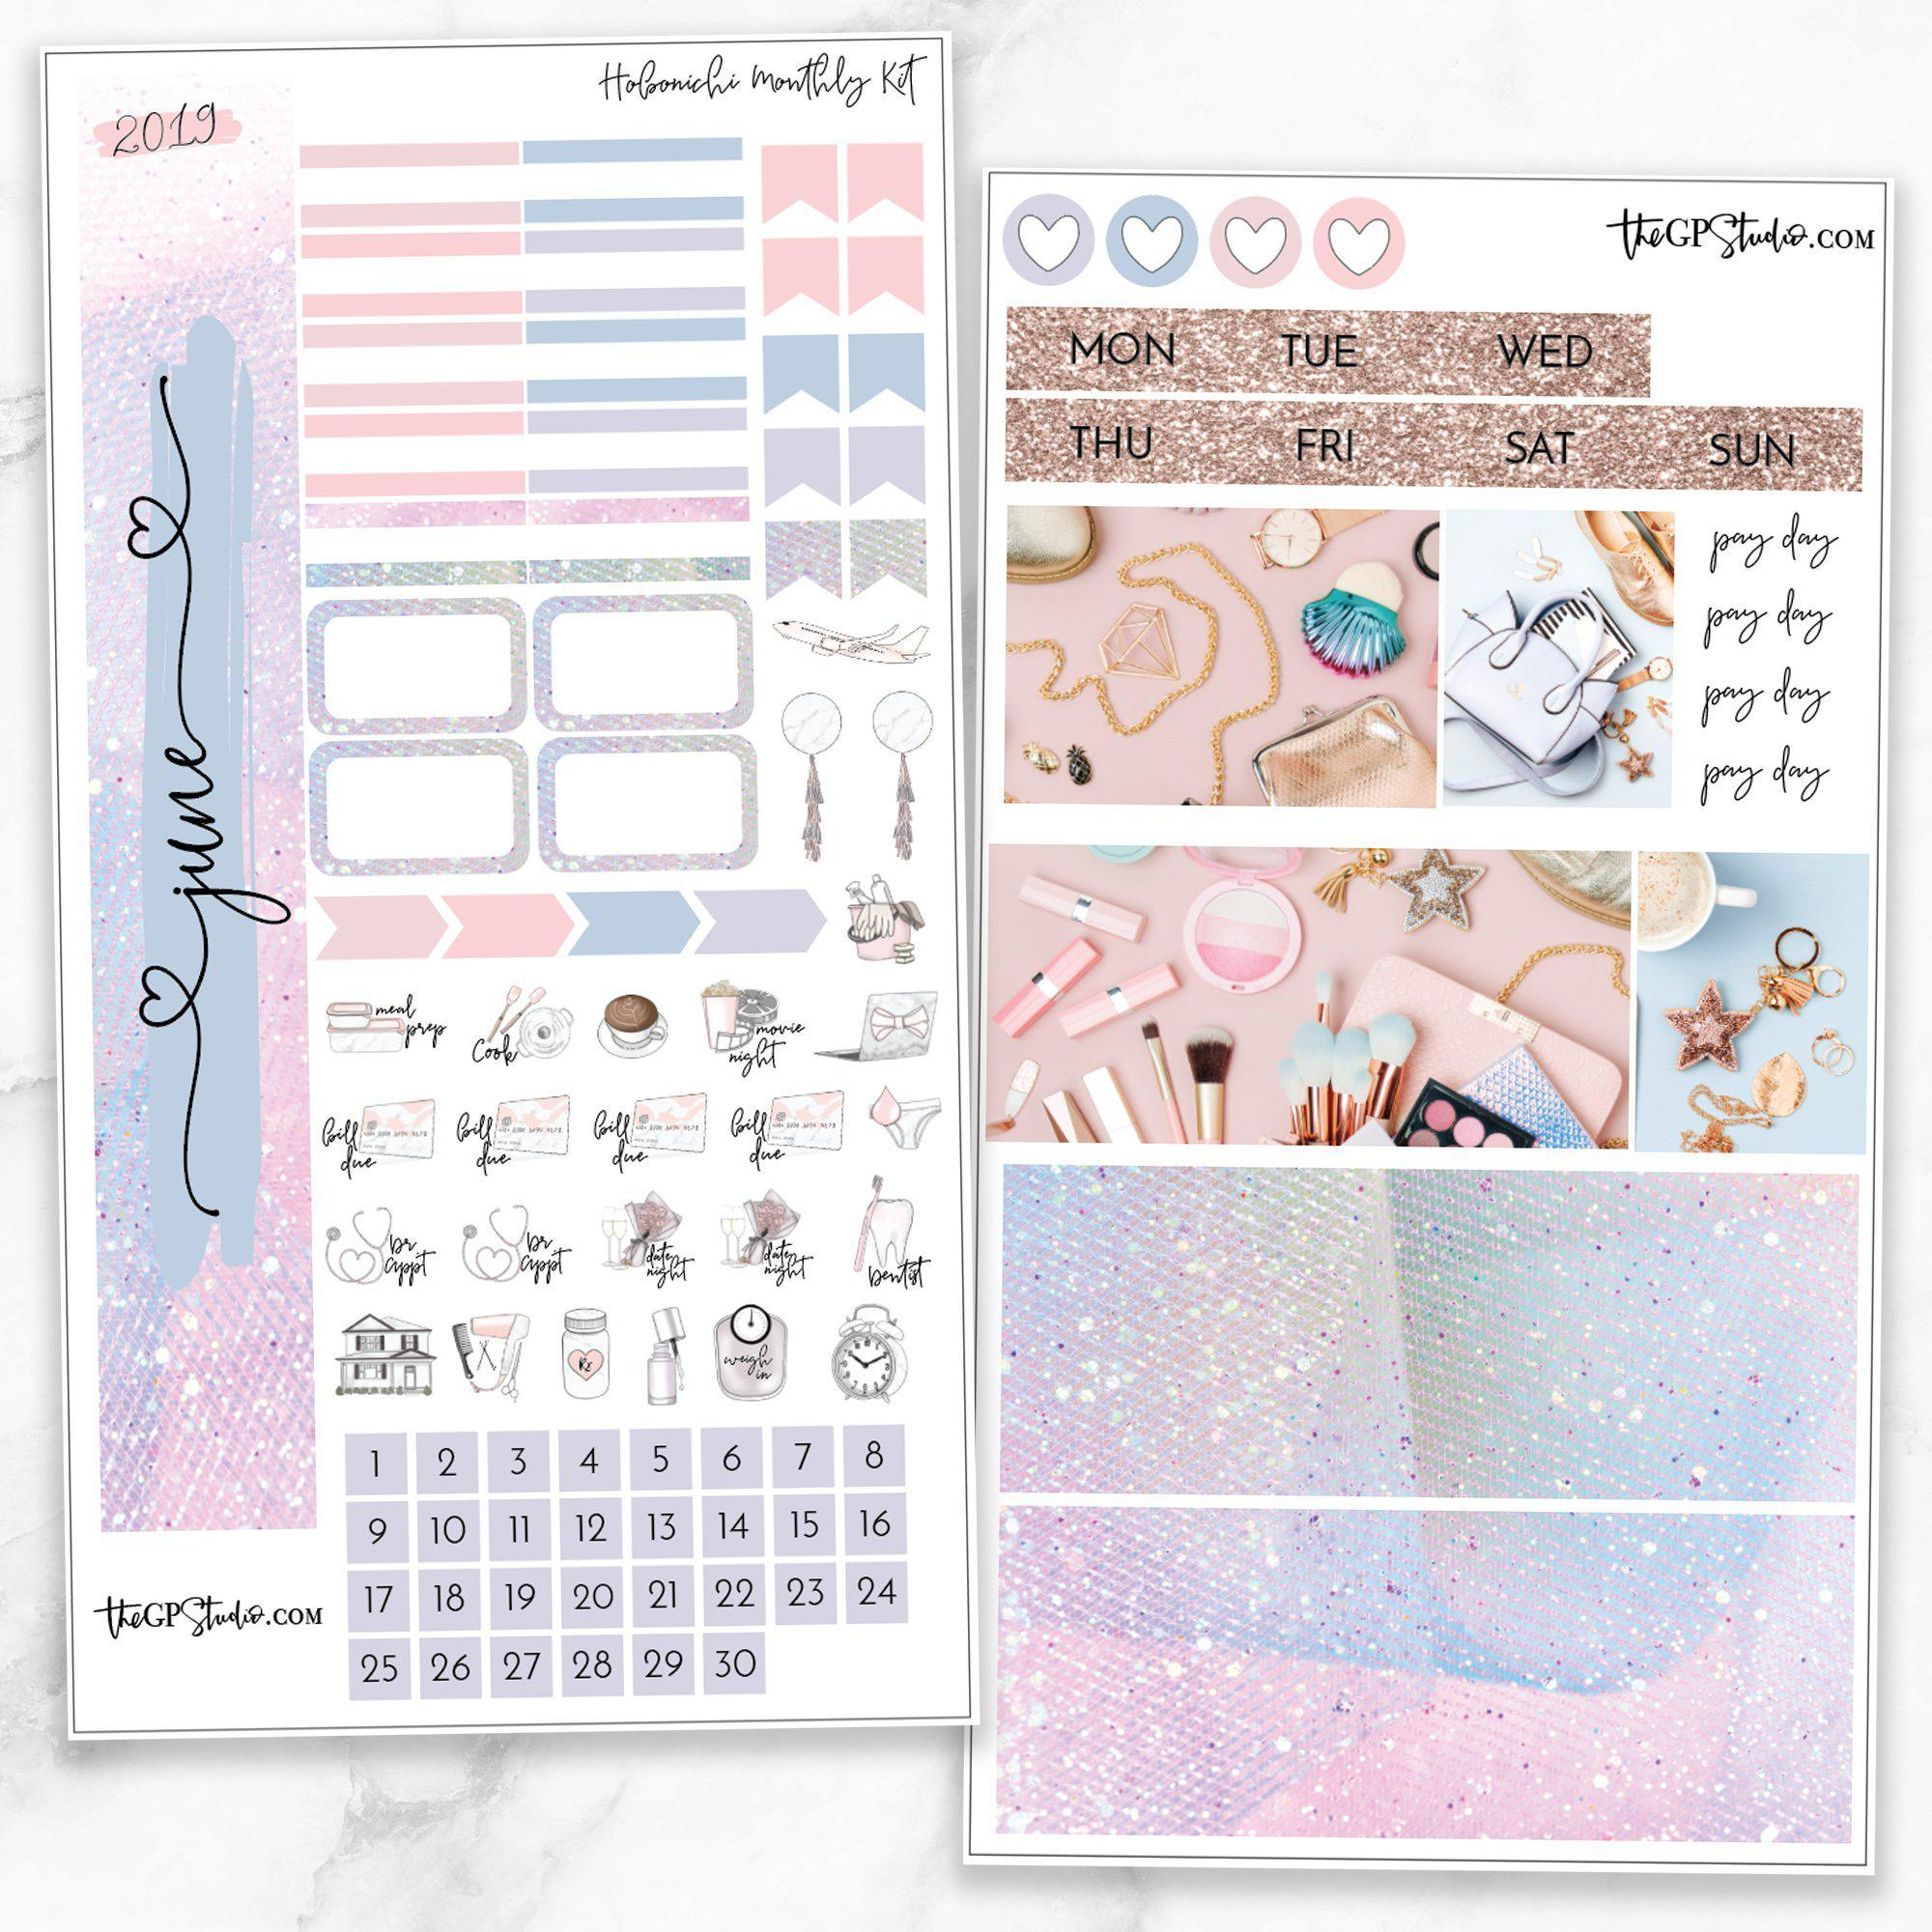 JUNE MONTHLY Sticker Kit Hobonichi Week's Size-The GP Studio